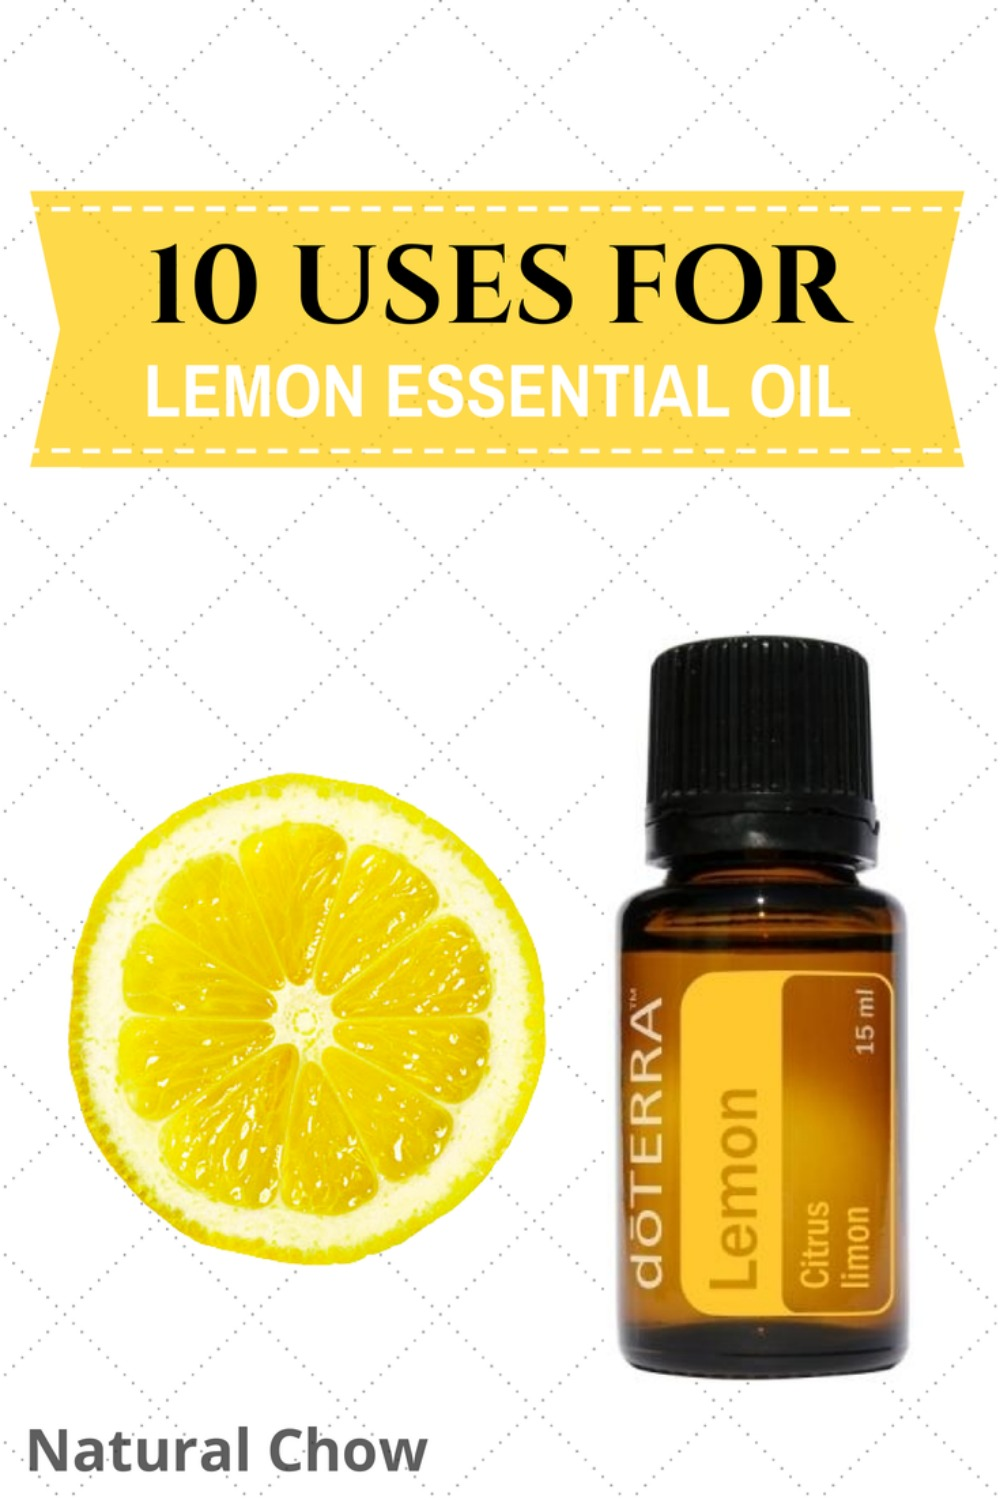 10 uses for lemon essential oil natural chow - Unusual uses for lemons ...